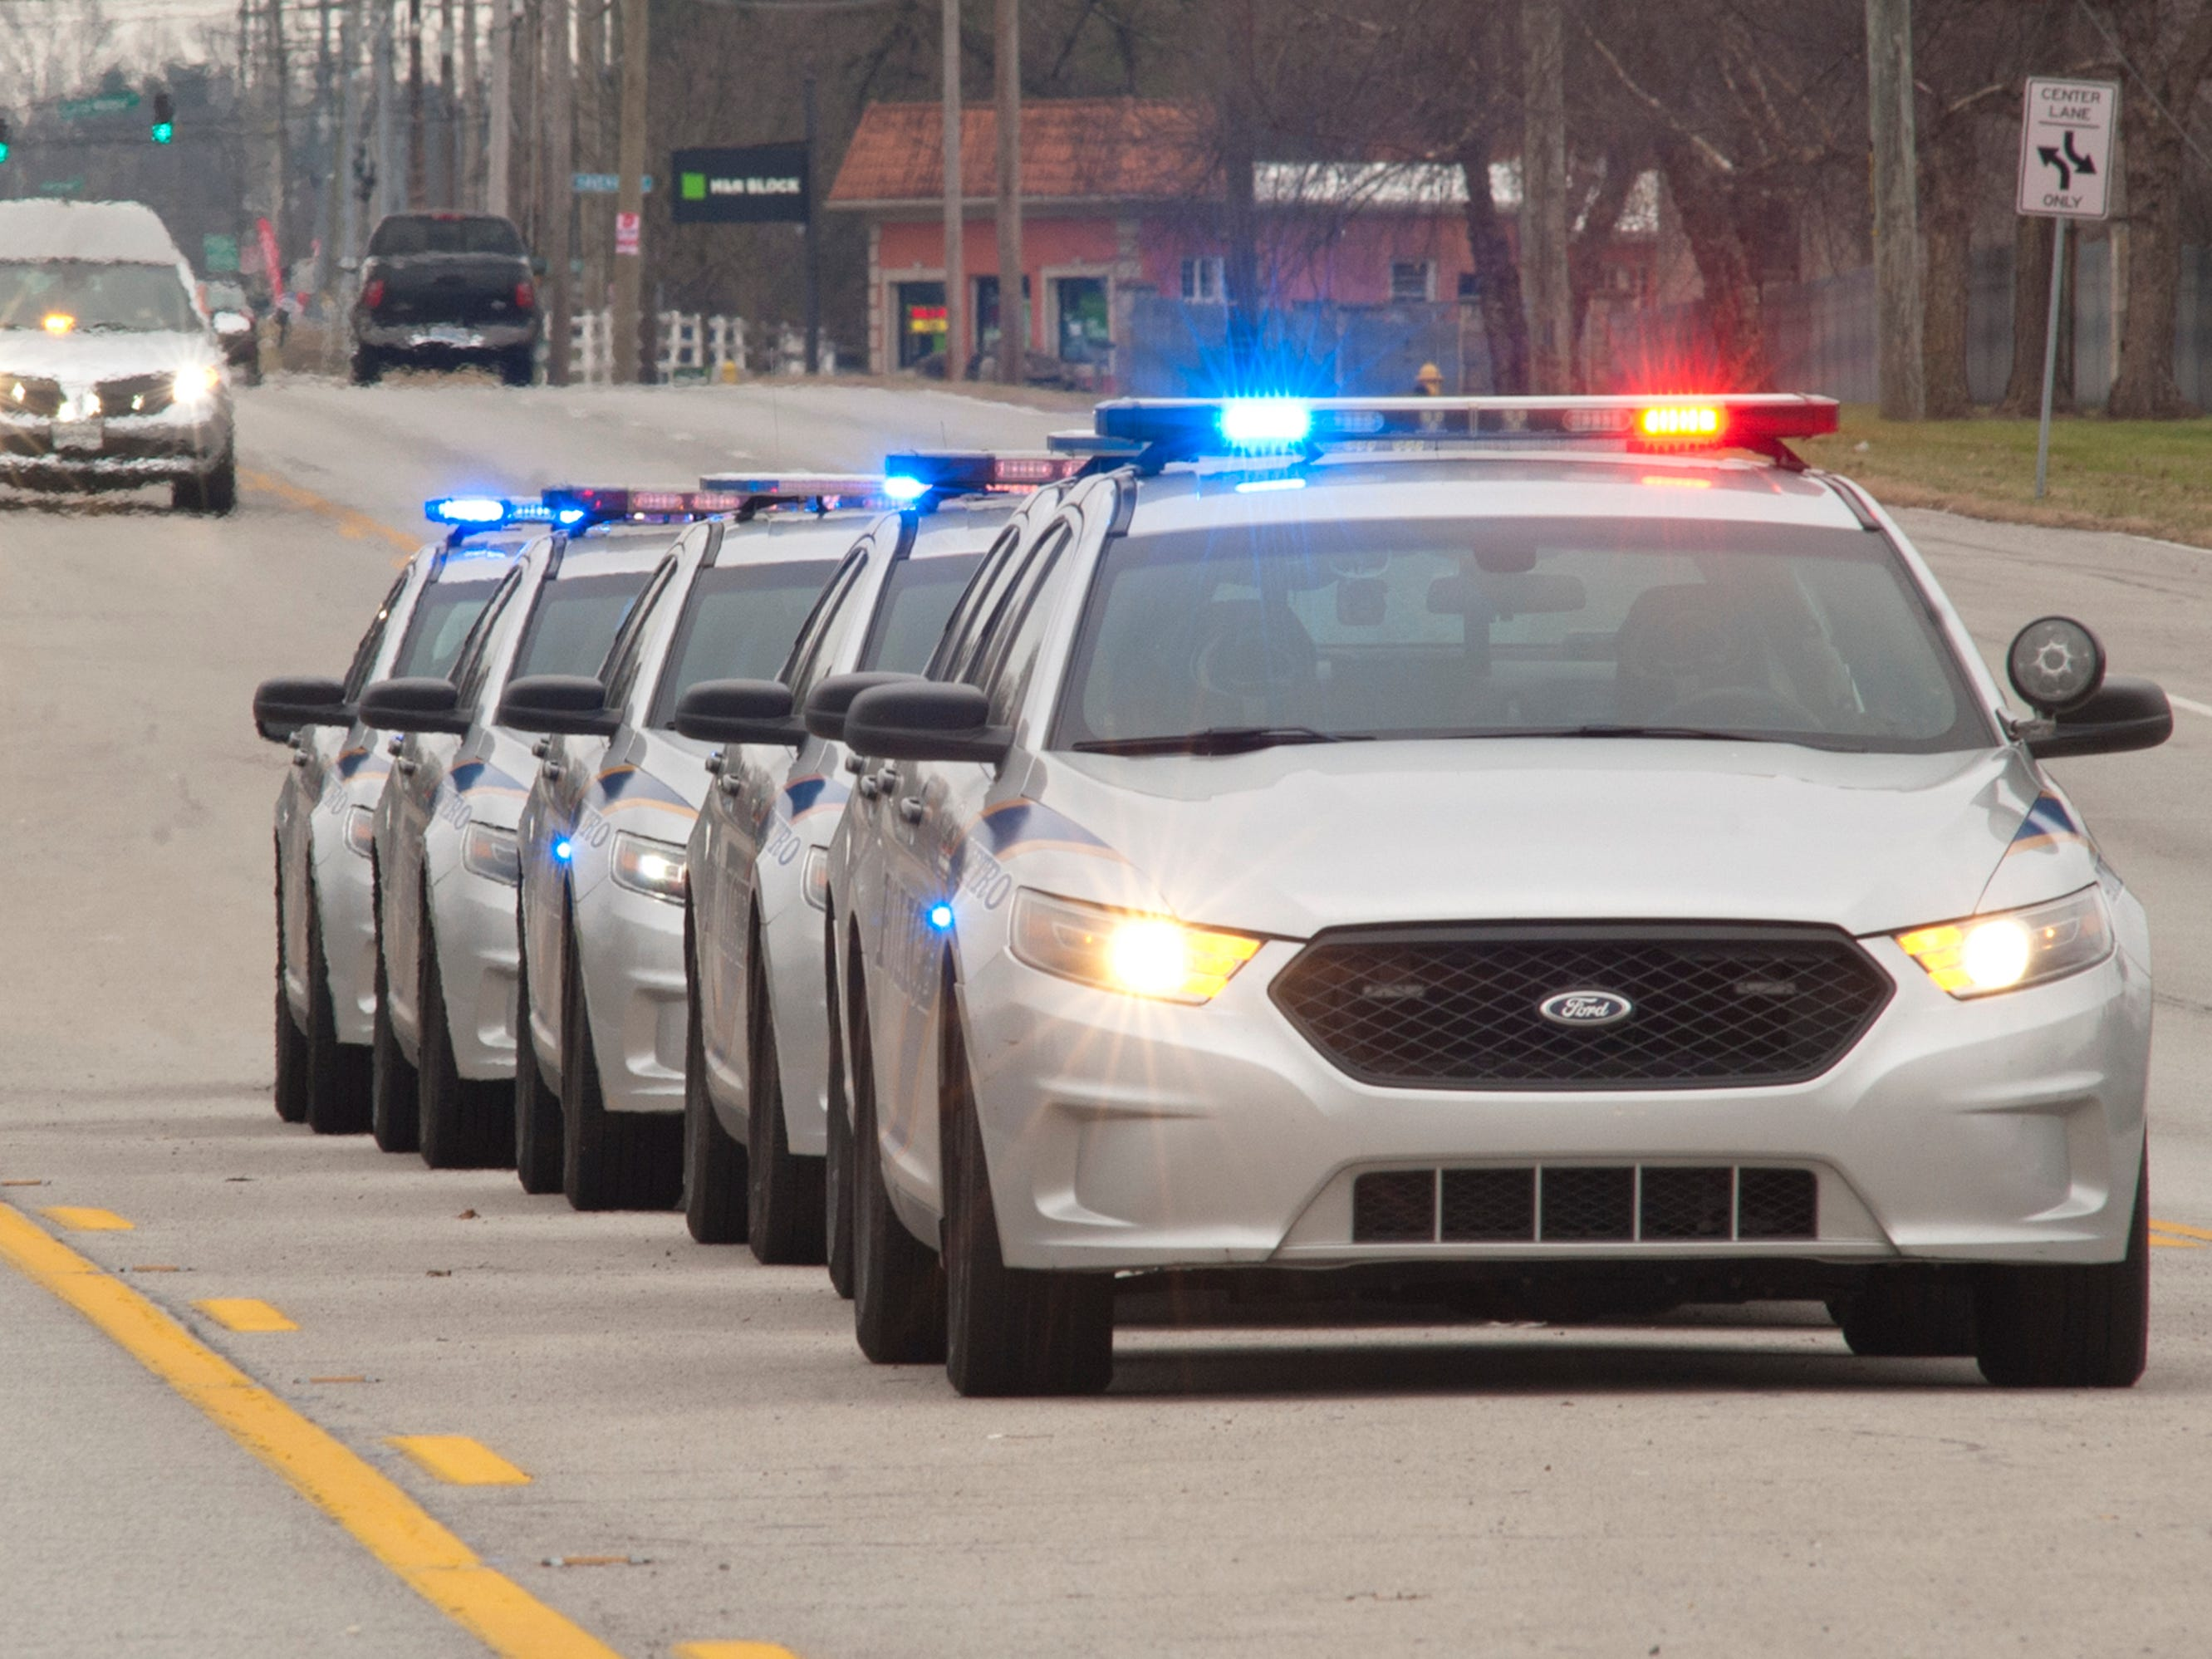 LMPD police cars line up in the center lane of Bardstown Road as the officers await the procession of LMPD Detective Deidre Mengedoht from S. 3rd Street to the Resthaven Funeral Home.